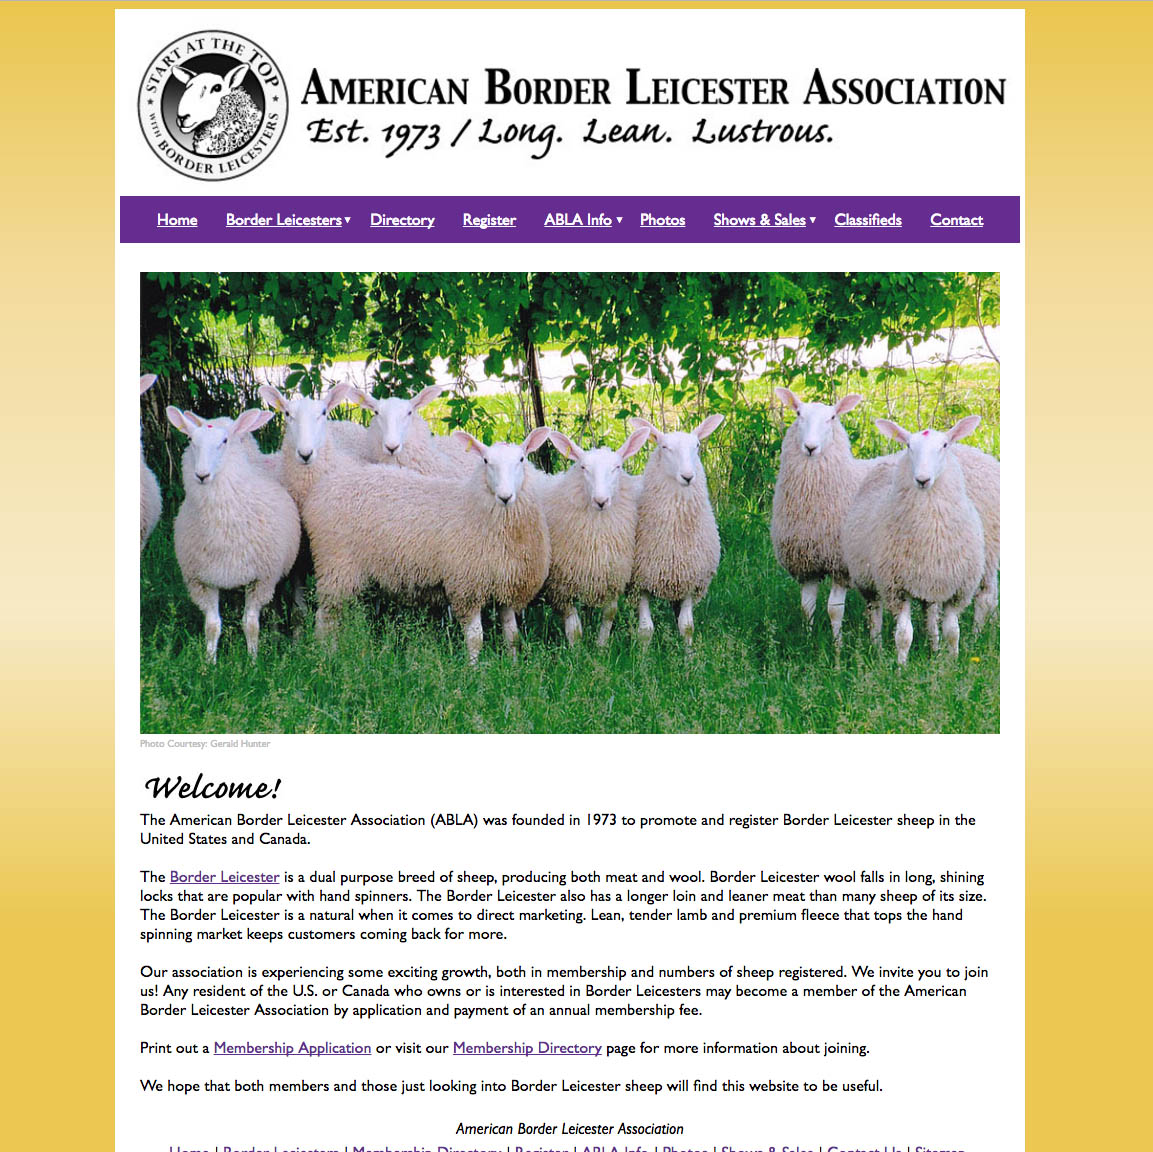 American Border Leicester Association